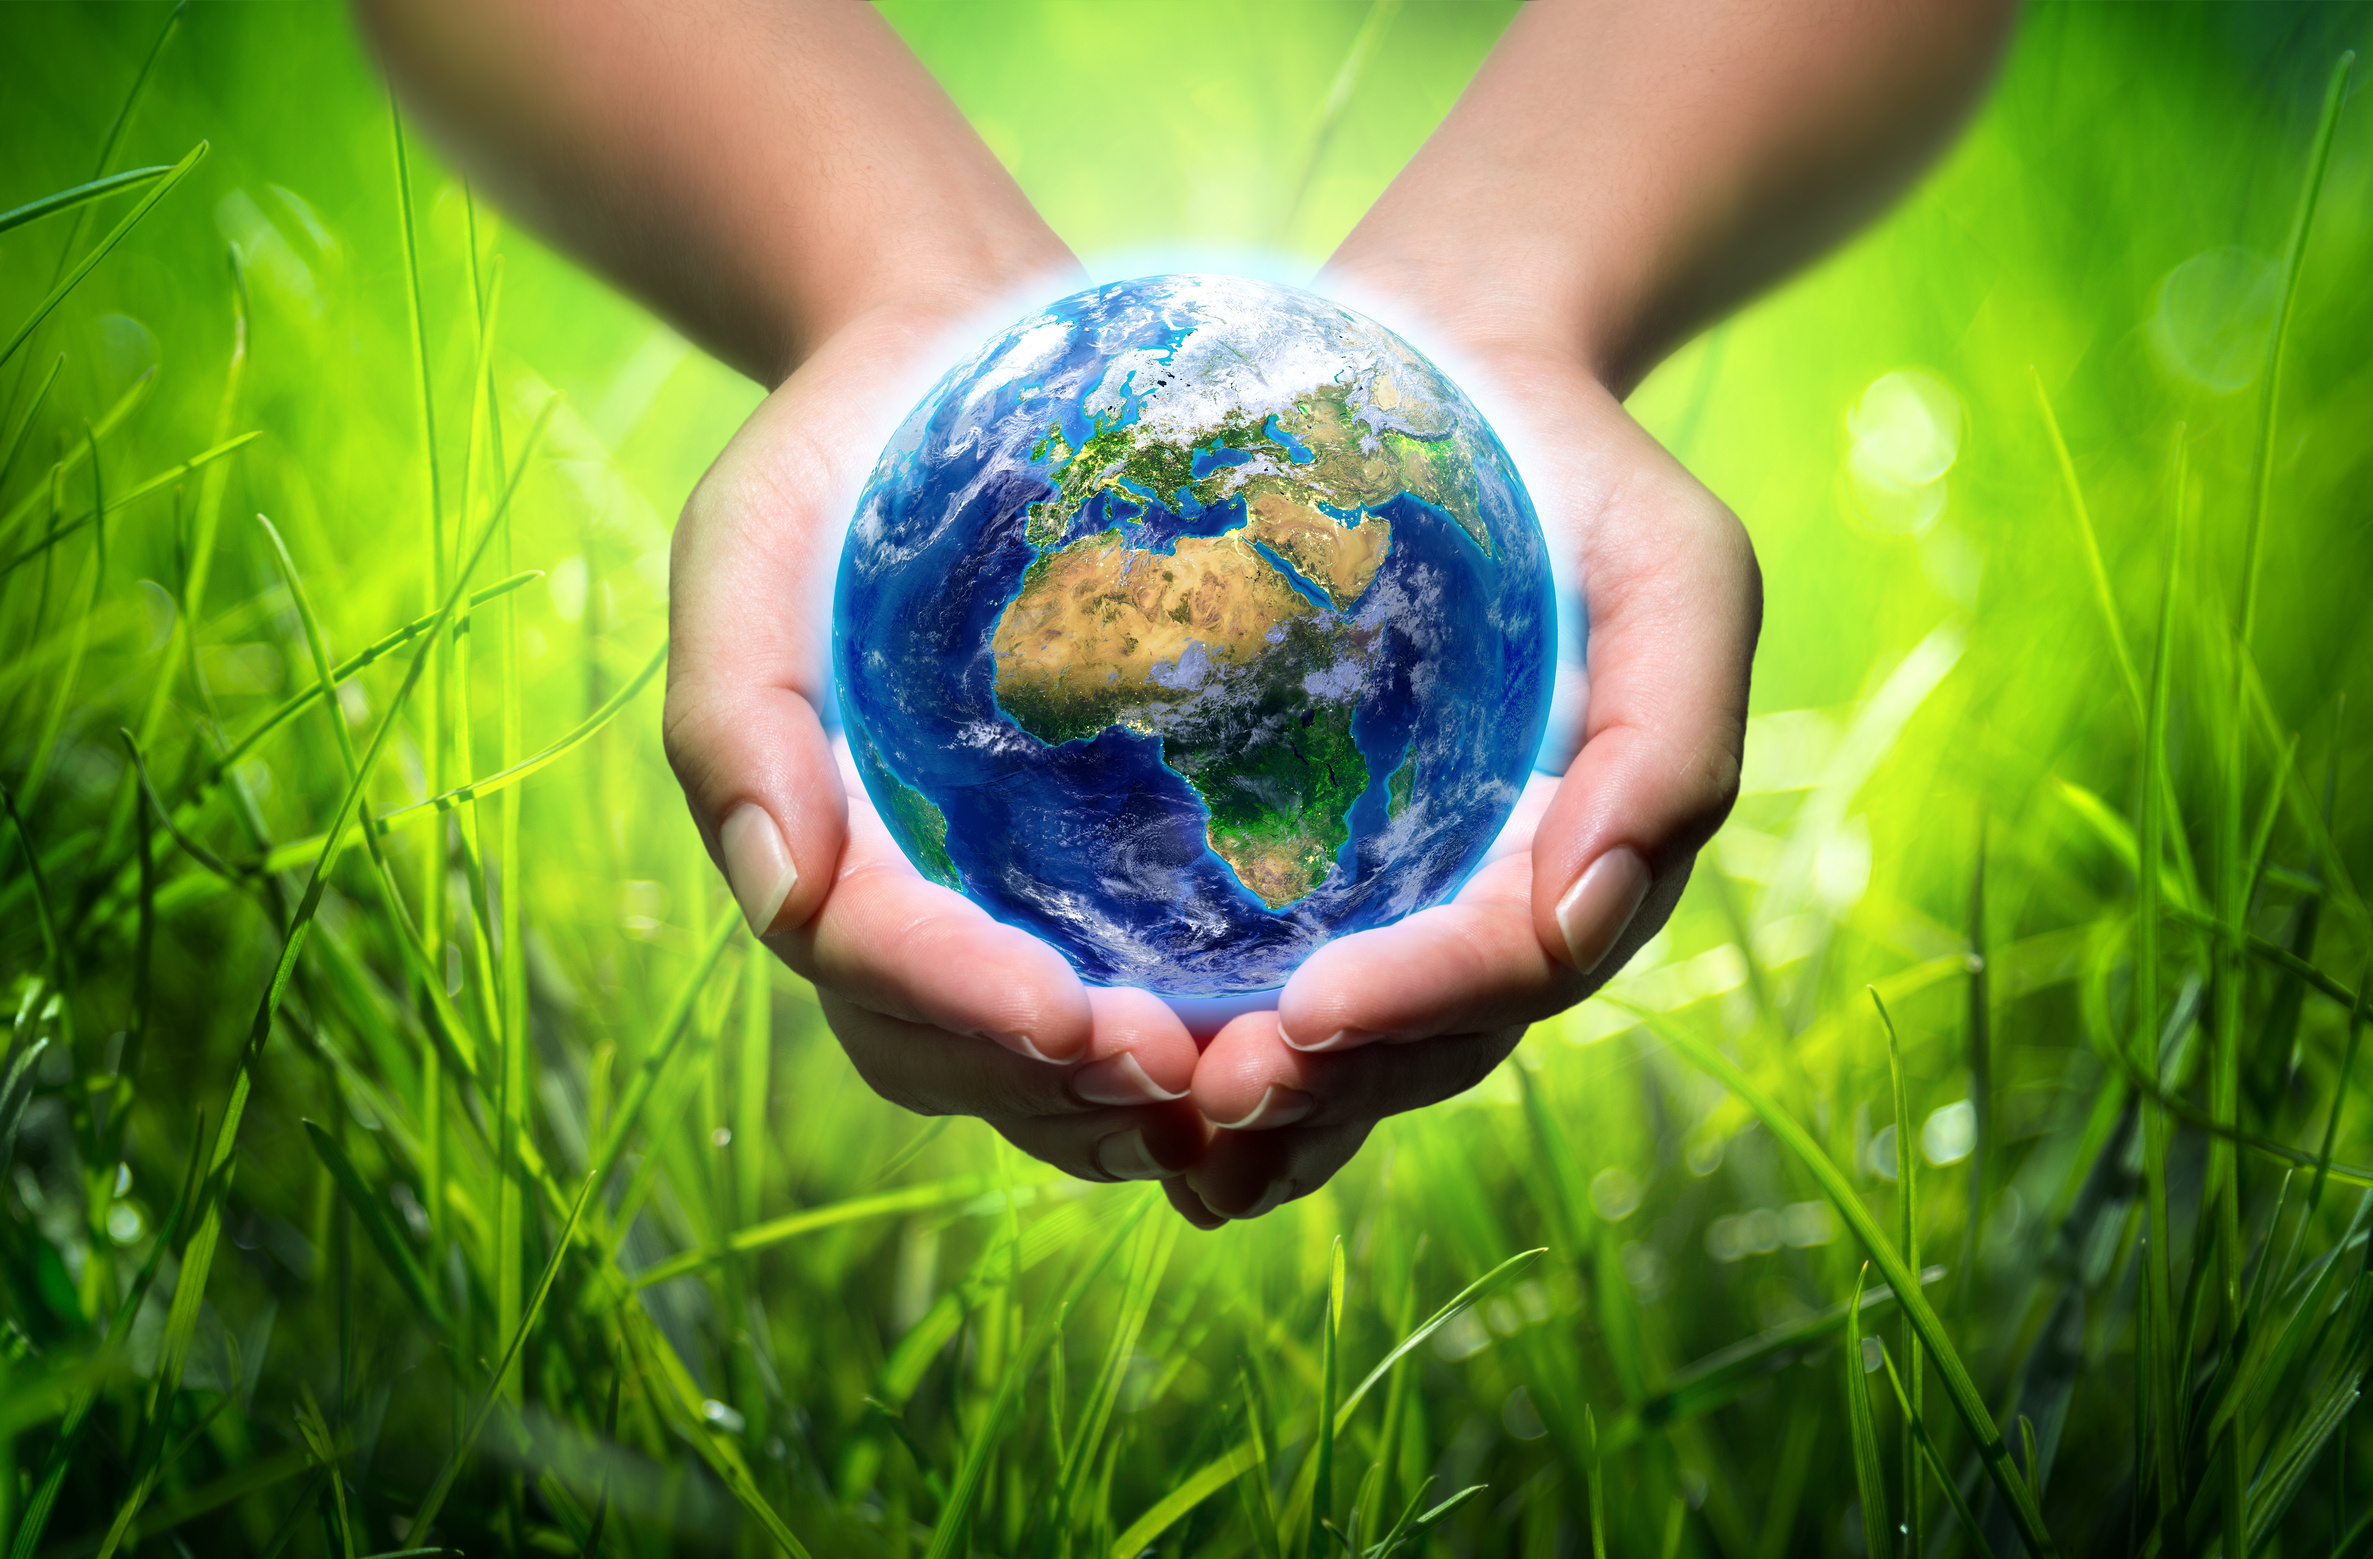 Politica Y Compromiso Con El Medio Ambiente on Earth Day Resources 2015